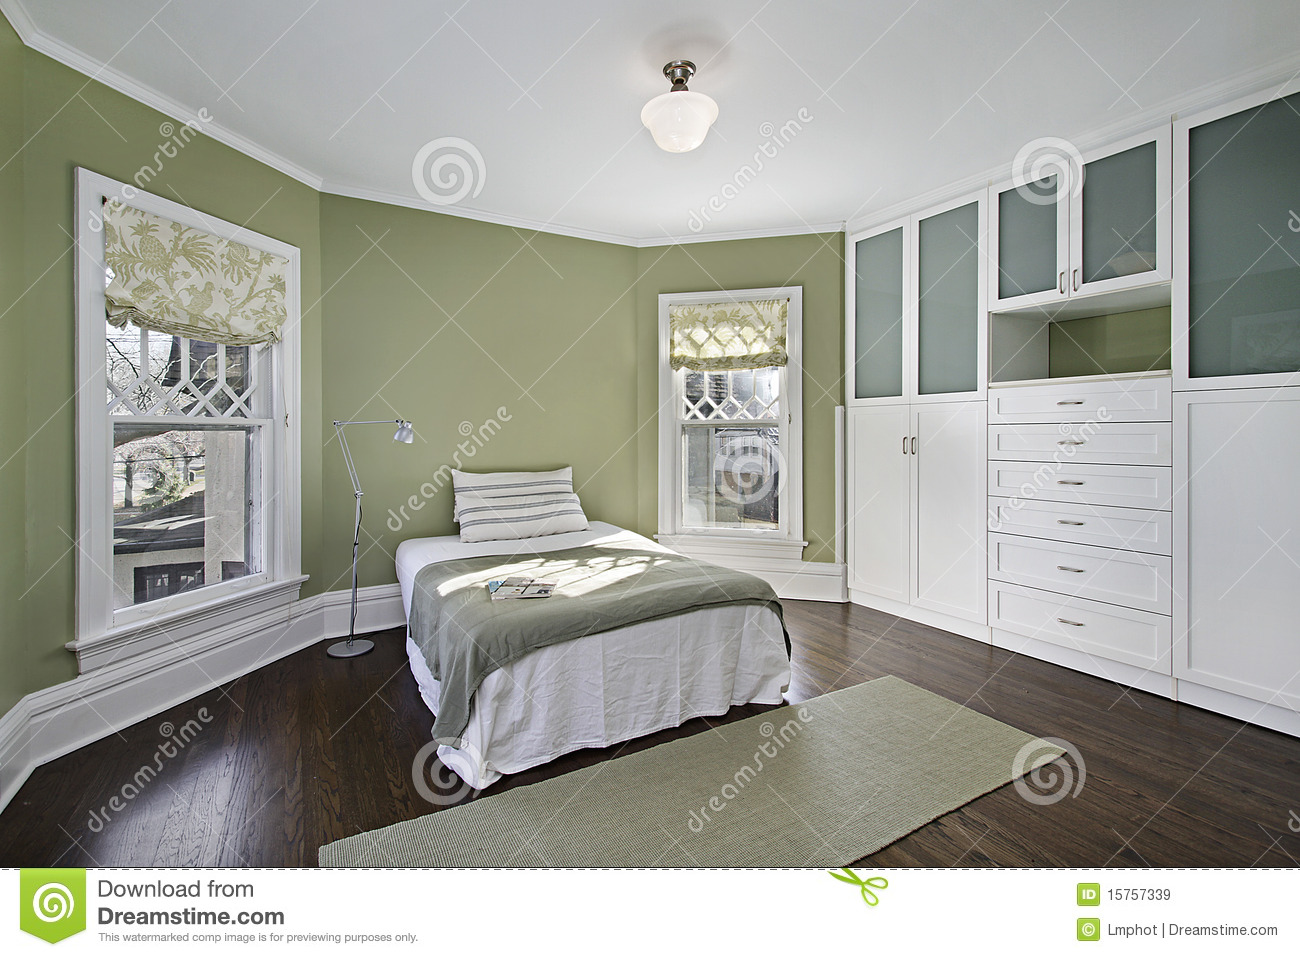 master bedroom with green walls stock images - image: 10394194